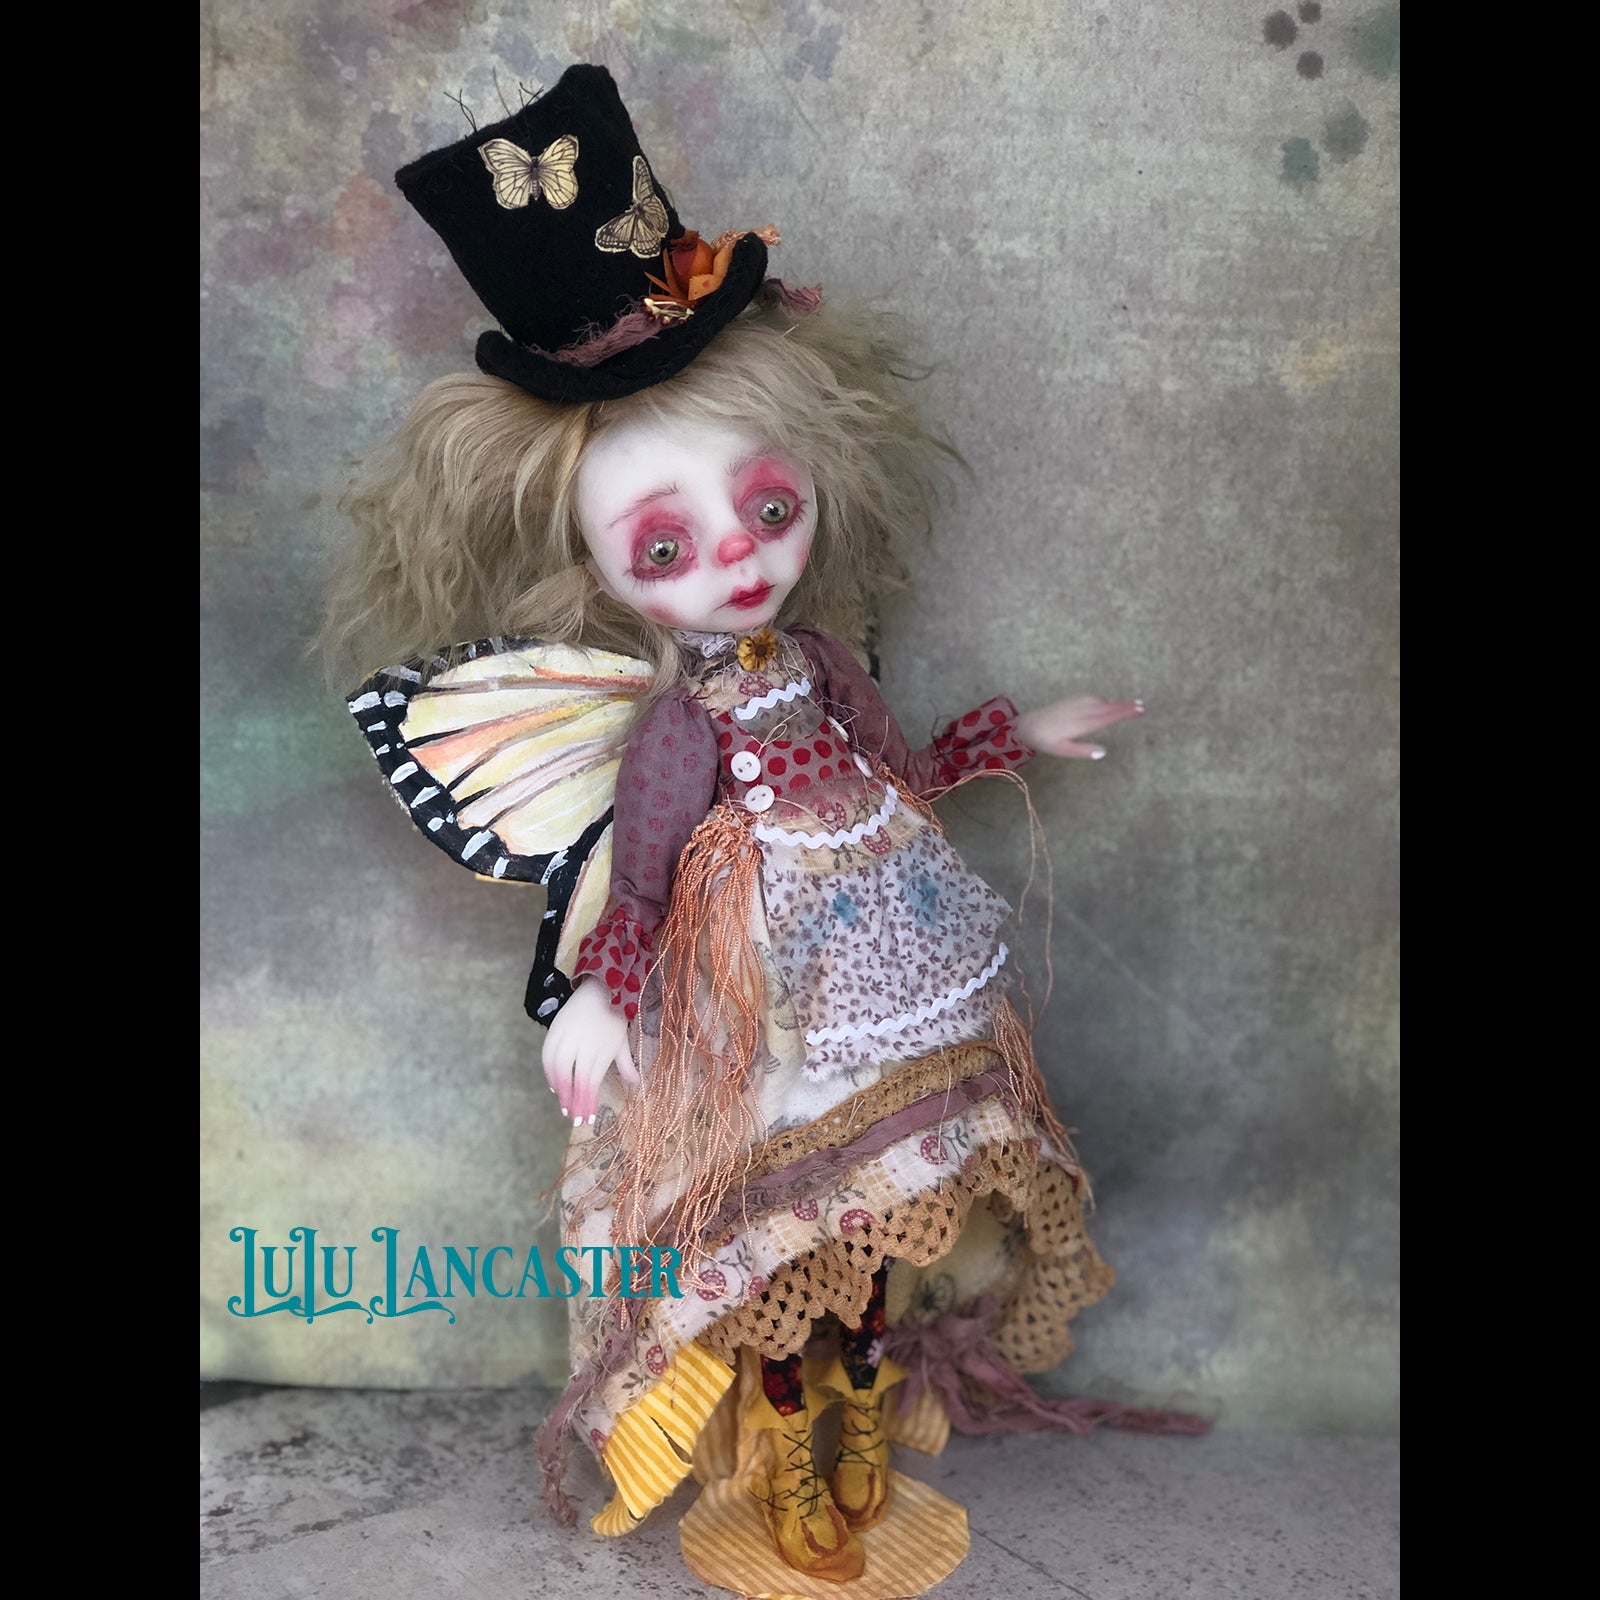 Finch Witherdale Gypsy Butterfly OOAK Art Doll LuLu Lancaster